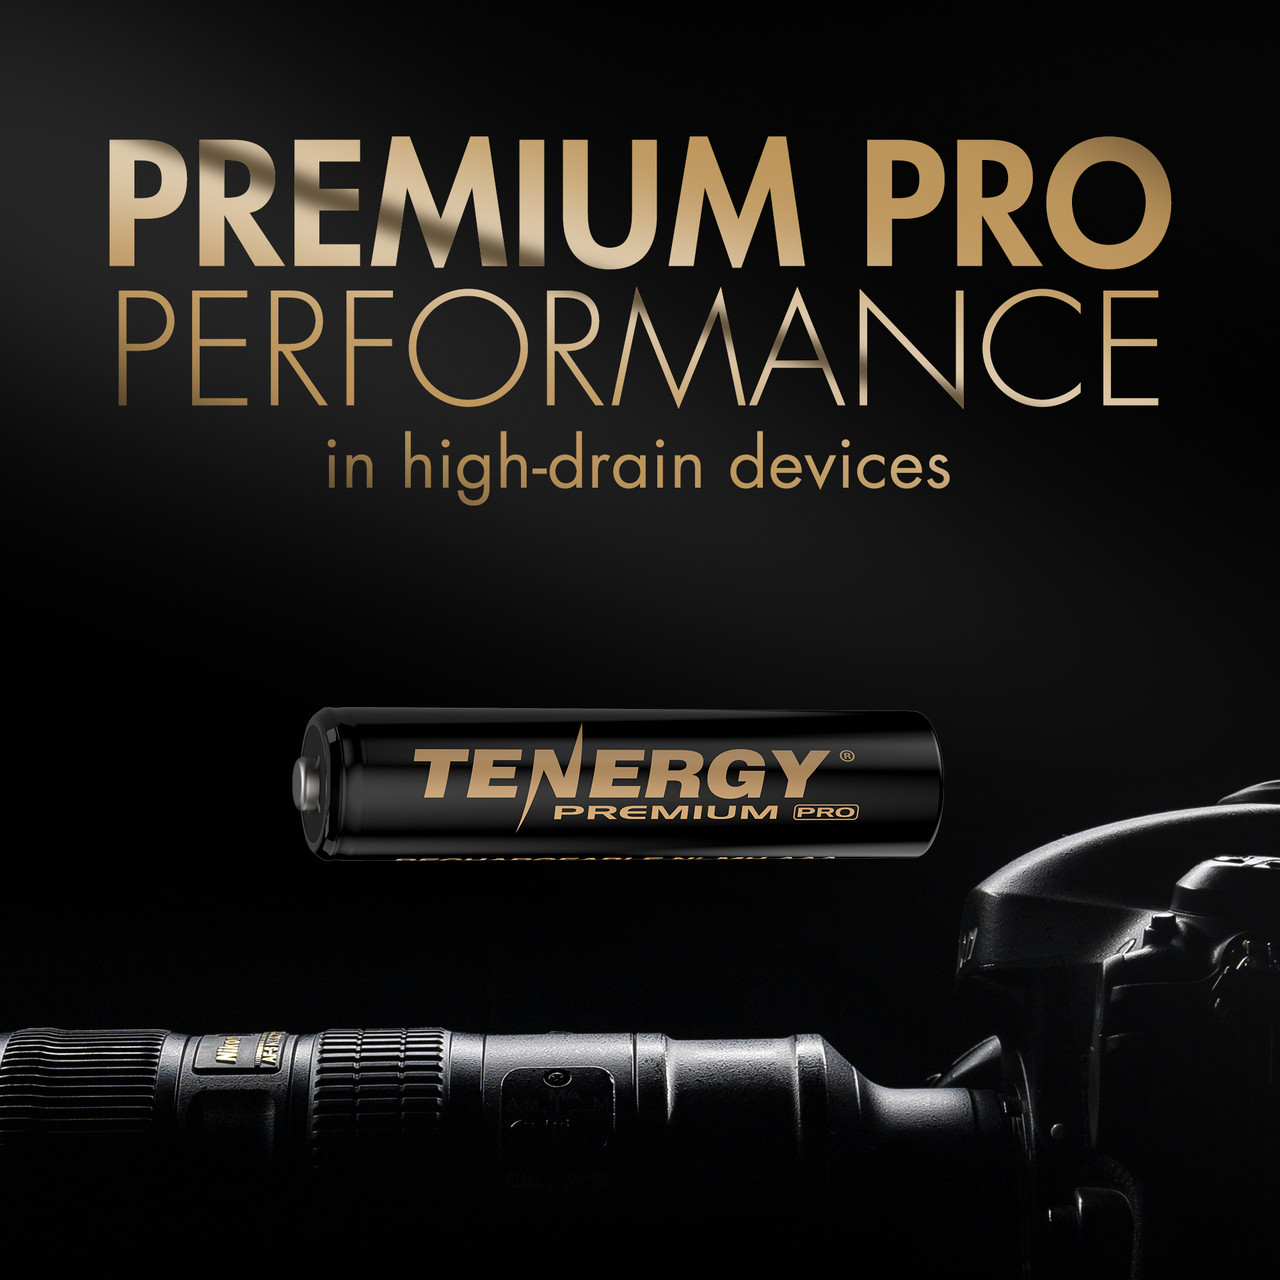 Tenergy Premium PRO Rechargeable AAA Batteries, High Capacity Low Self-Discharge 1100mAh NiMH AAA Battery, 4 Pack